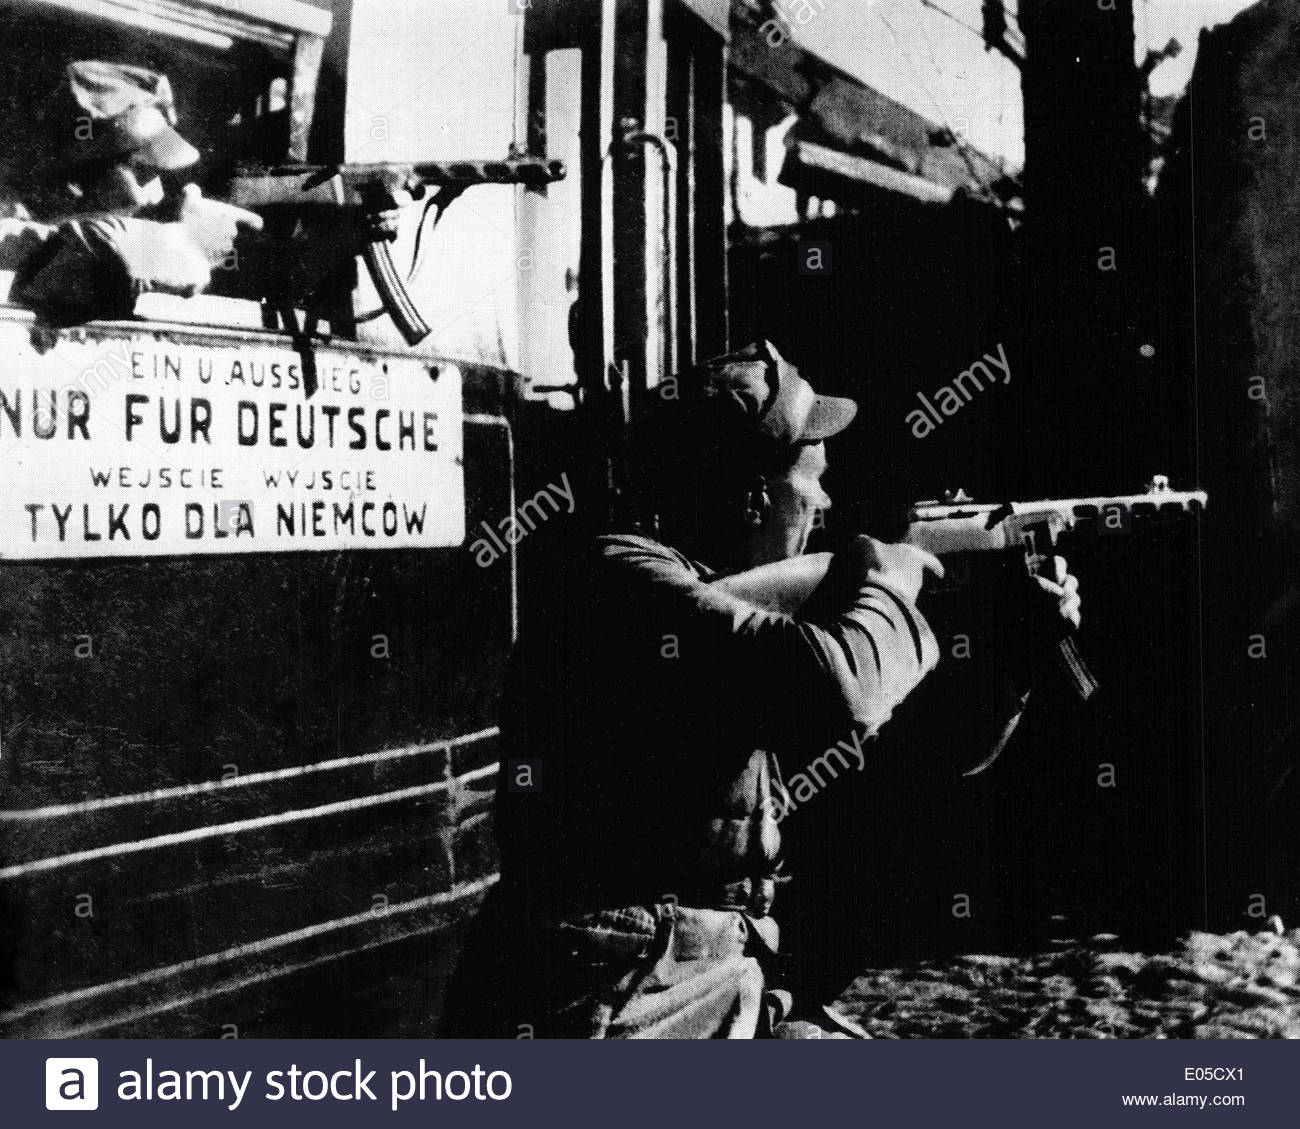 Street fight in Warsaw, Poland in the tramway depot during Second World War with the racist caption 'only for - Stock Image